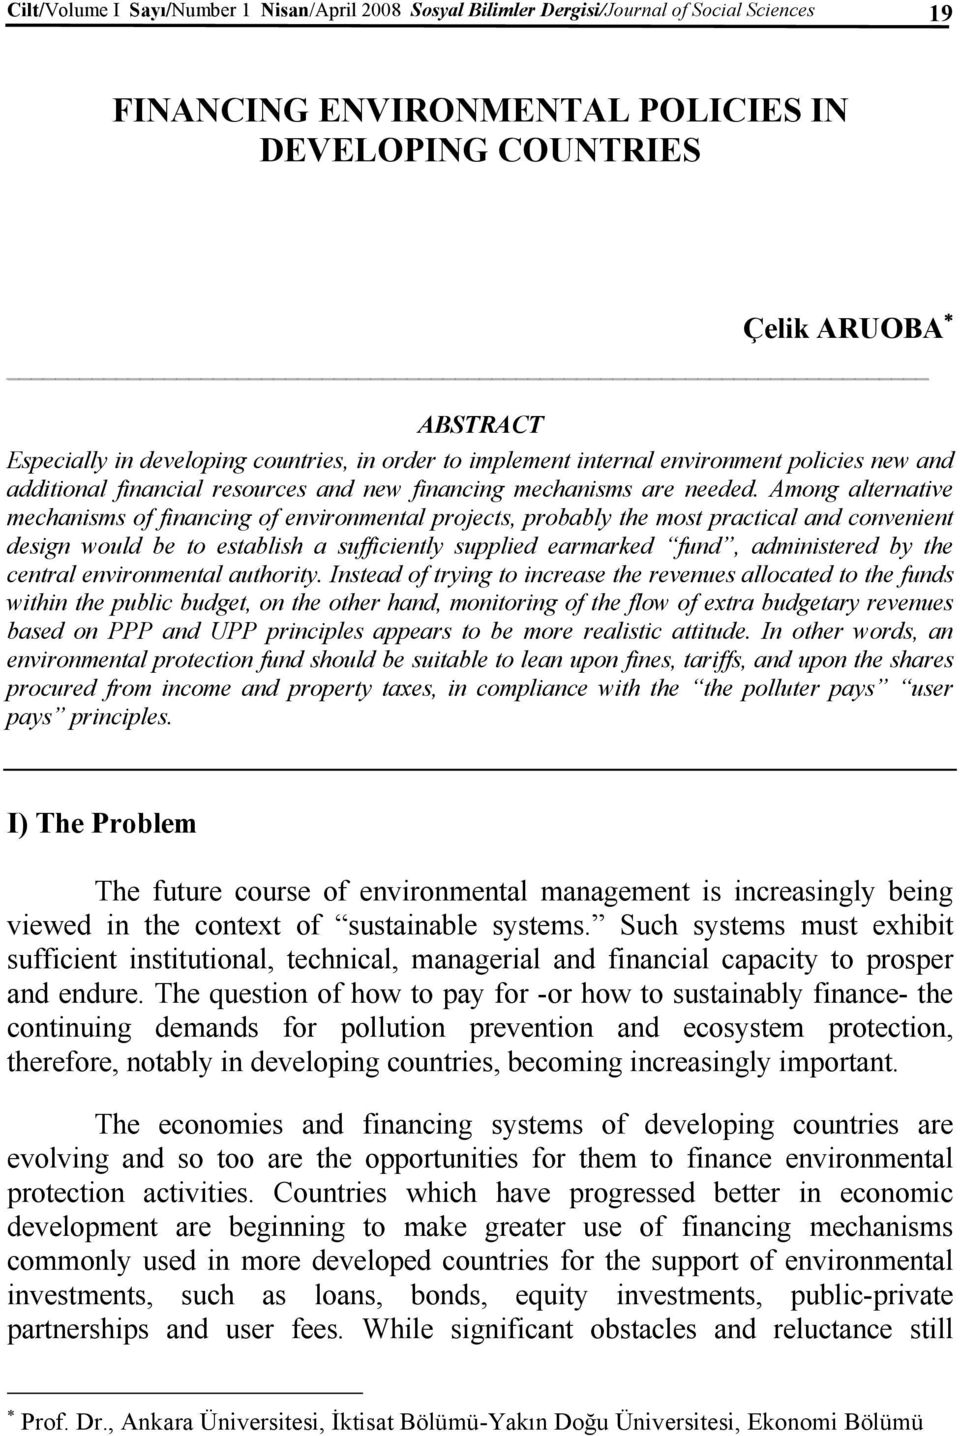 Among alternative mechanisms of financing of environmental projects, probably the most practical and convenient design would be to establish a sufficiently supplied earmarked fund, administered by